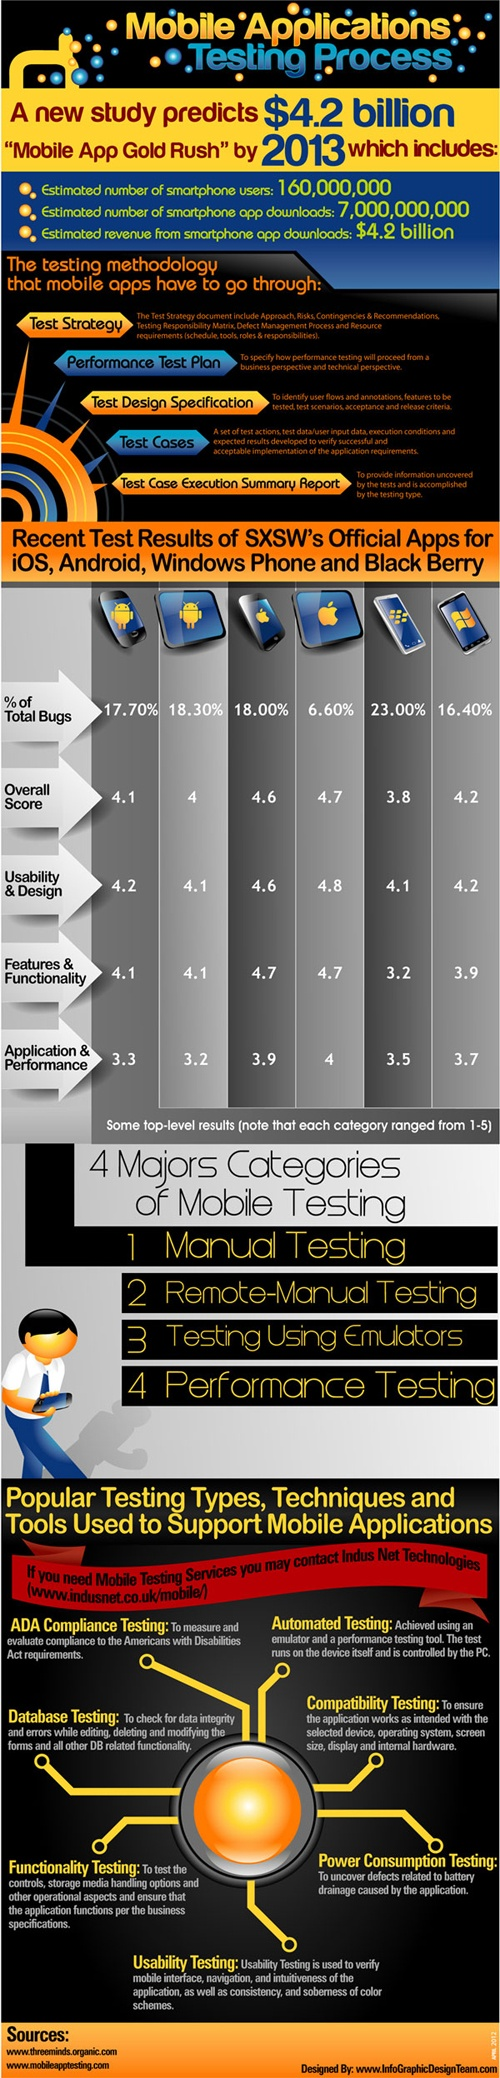 This infographic talks about various Mobile Application